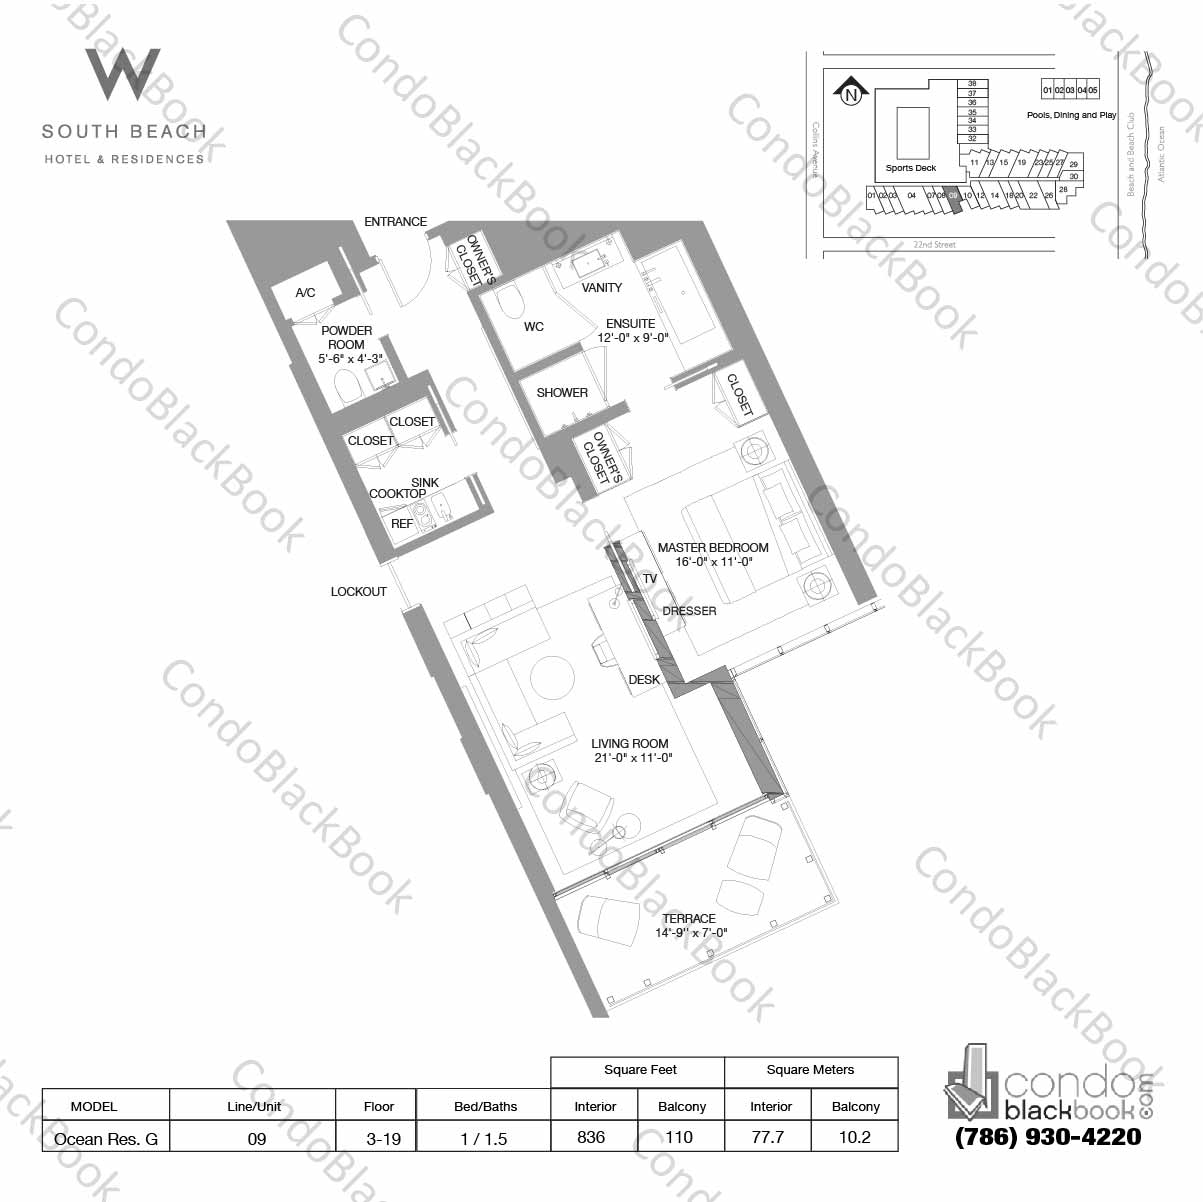 Floor plan for W South Beach South Beach Miami Beach, model Ocean Res. G, line 09, 1 / 1.5 bedrooms, 836 sq ft